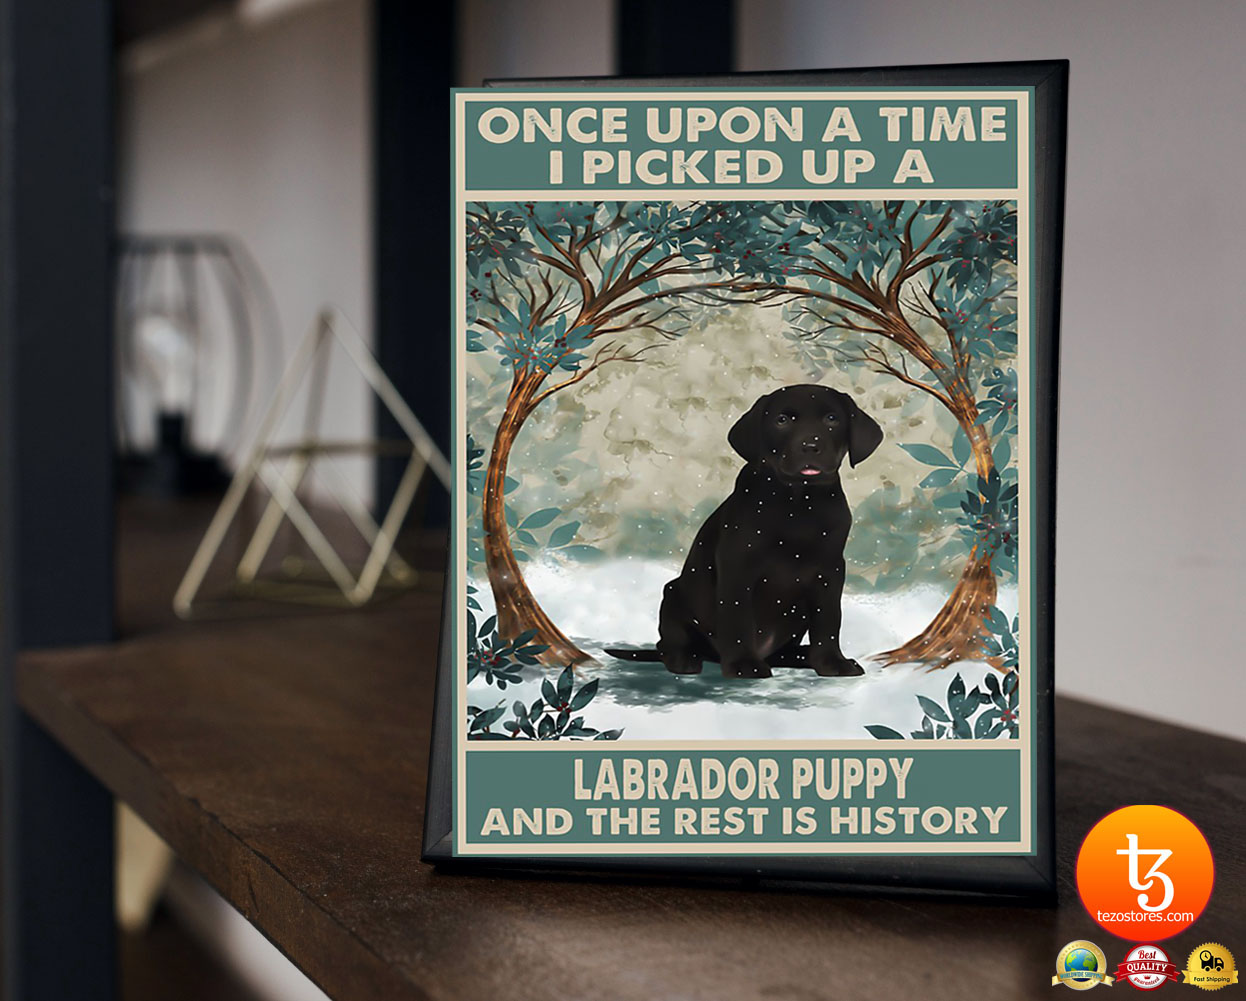 Once upon a time I picked up a labrador puppy and the rest is history poster 23